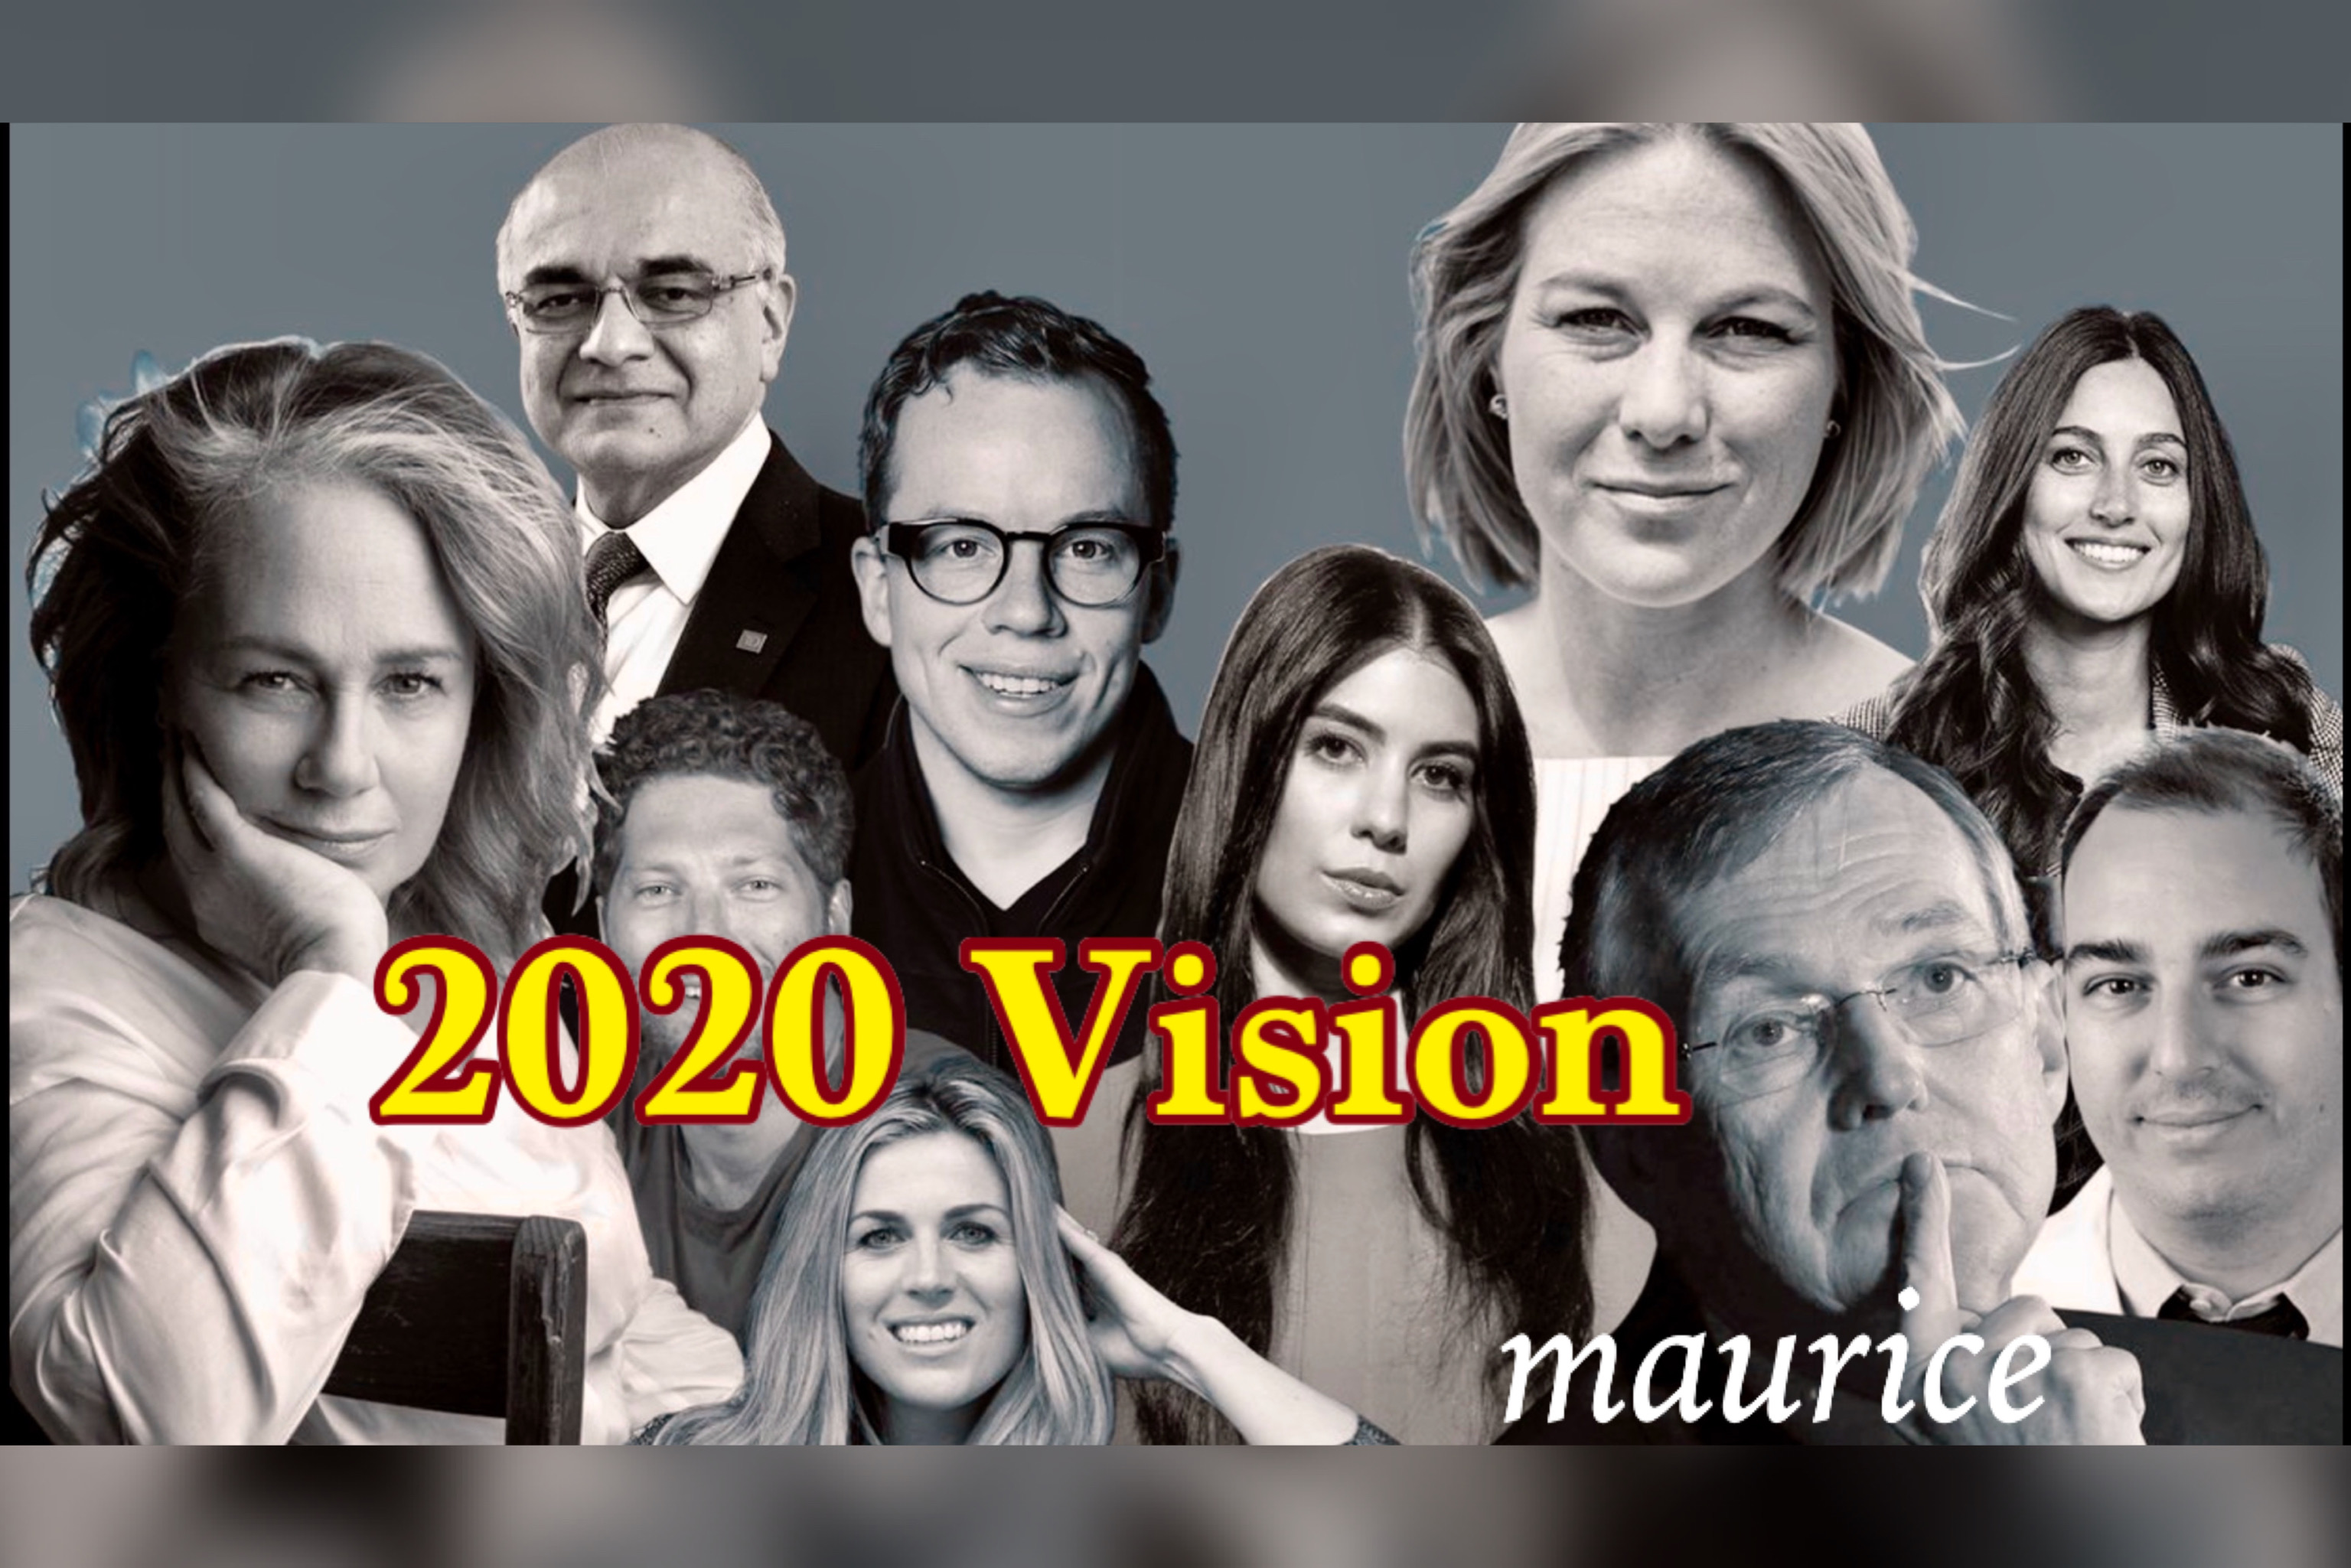 2020 vision: 10 opportunities to give Canada an edge in the coming year